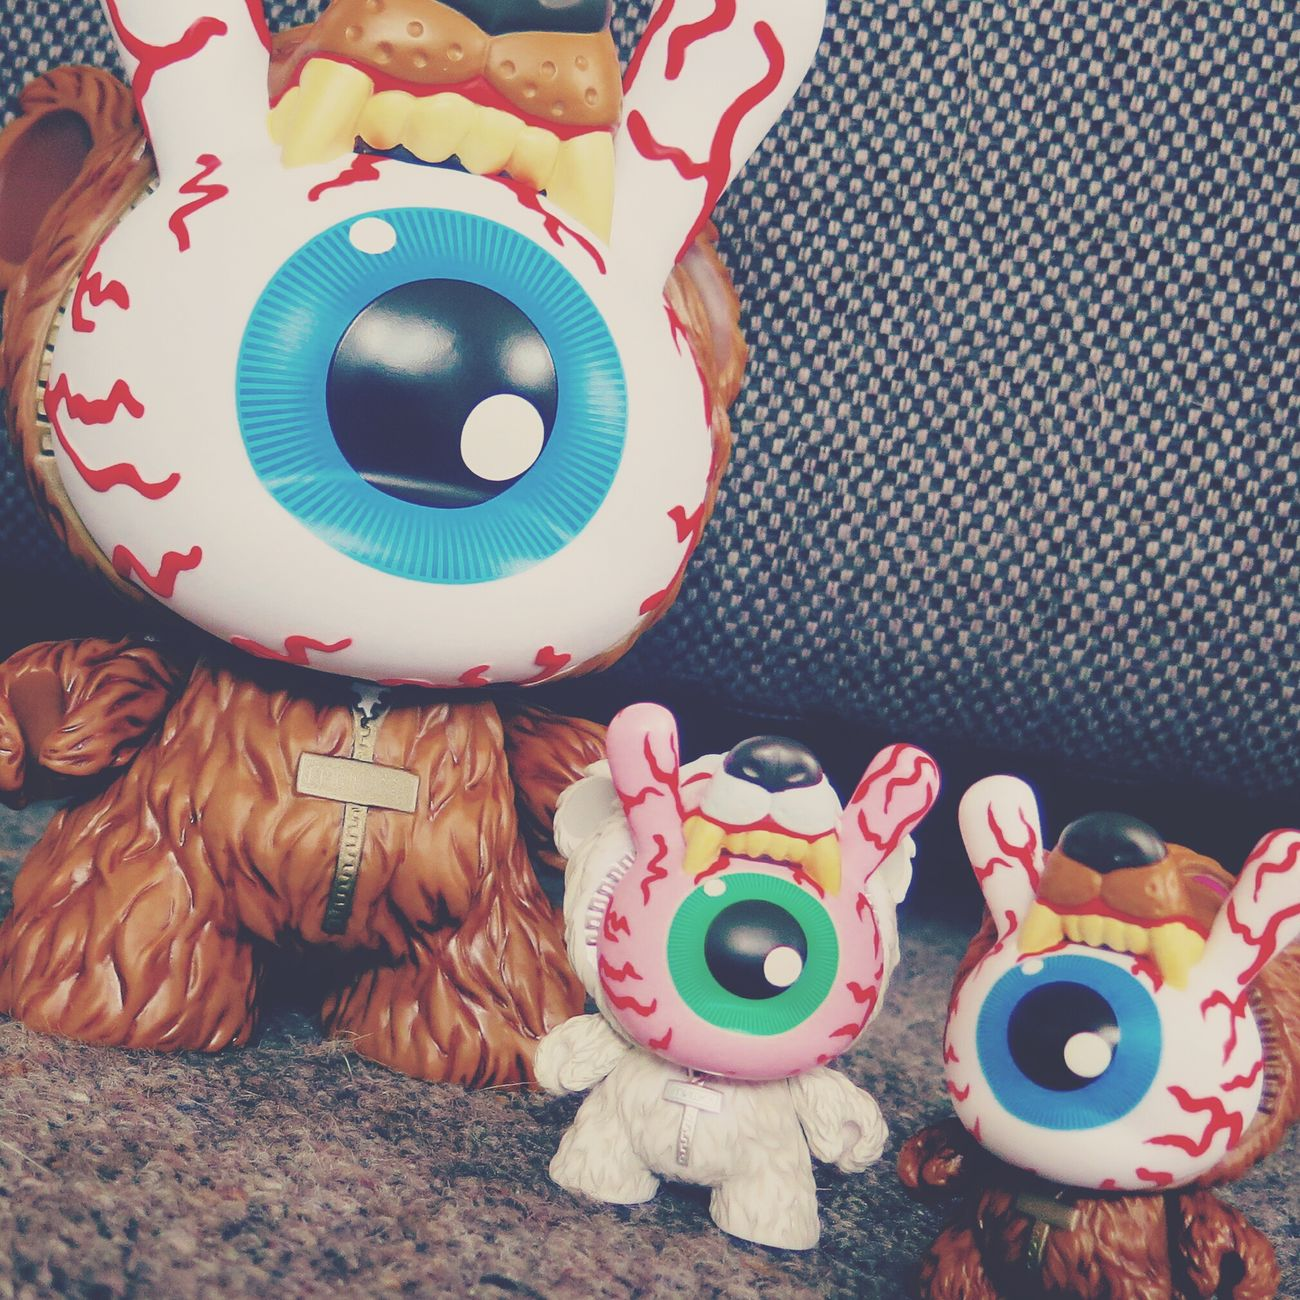 "Mishka Keep Watch 3"" & 8"" Dunnys. New additions to Mydunnycollection"